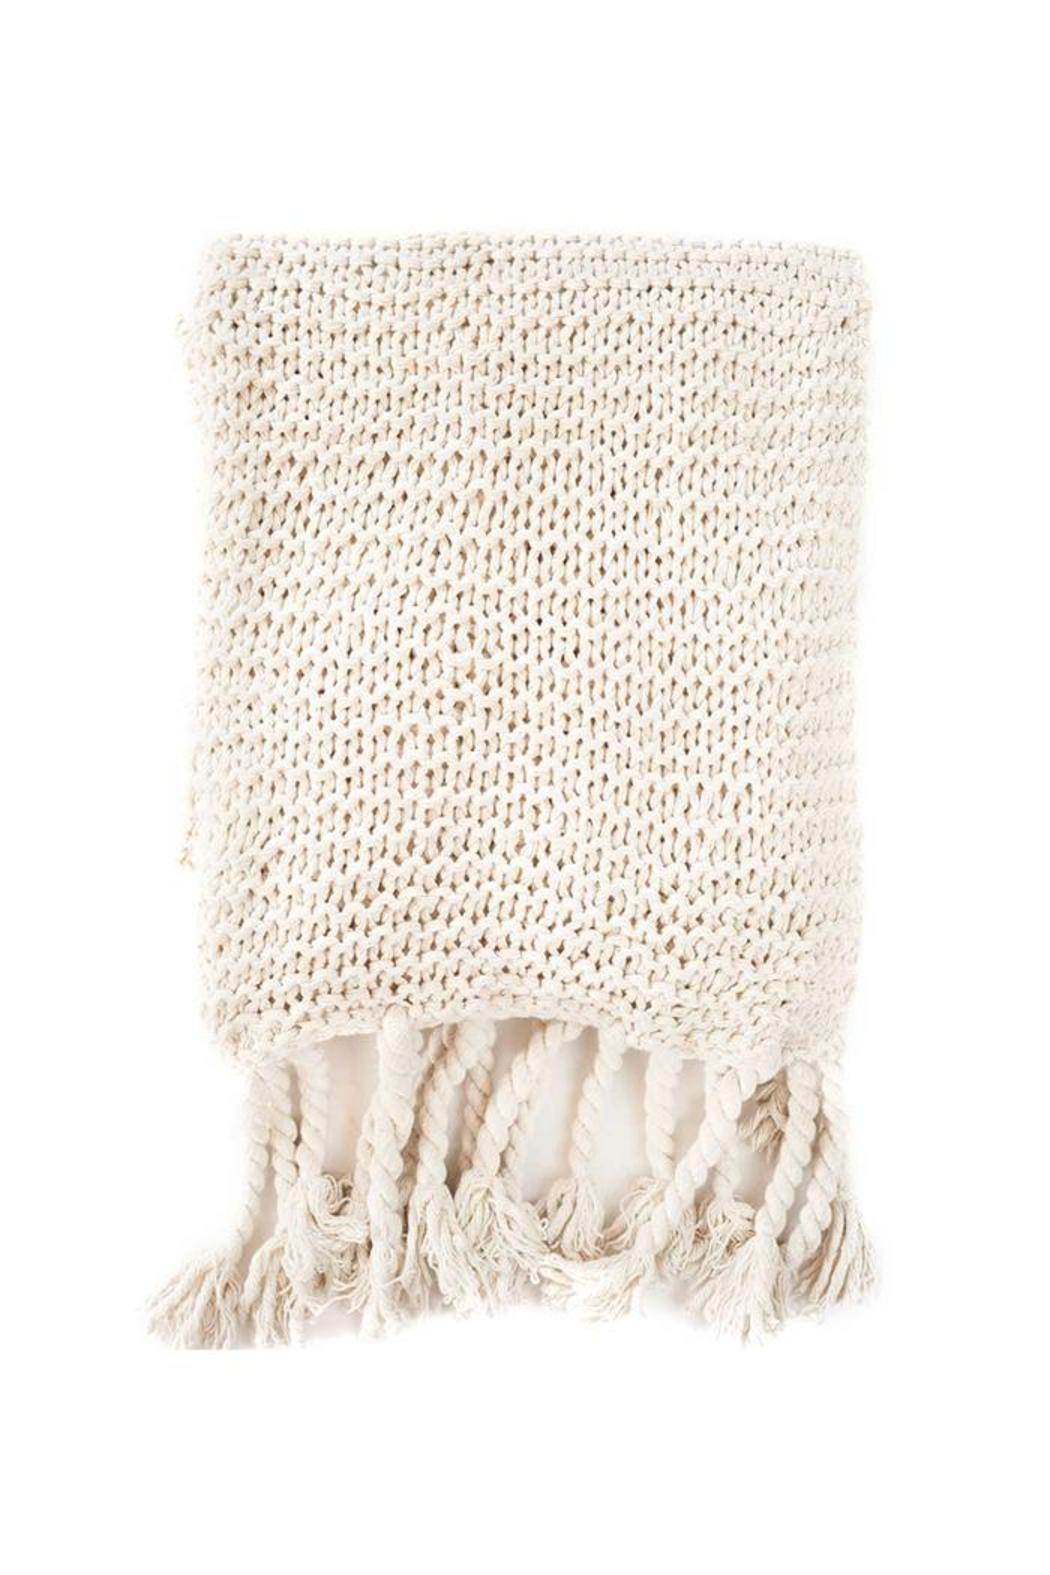 Apartminty Fresh Picks: Warm and Fuzzy | Cable Knit Throw Blanket